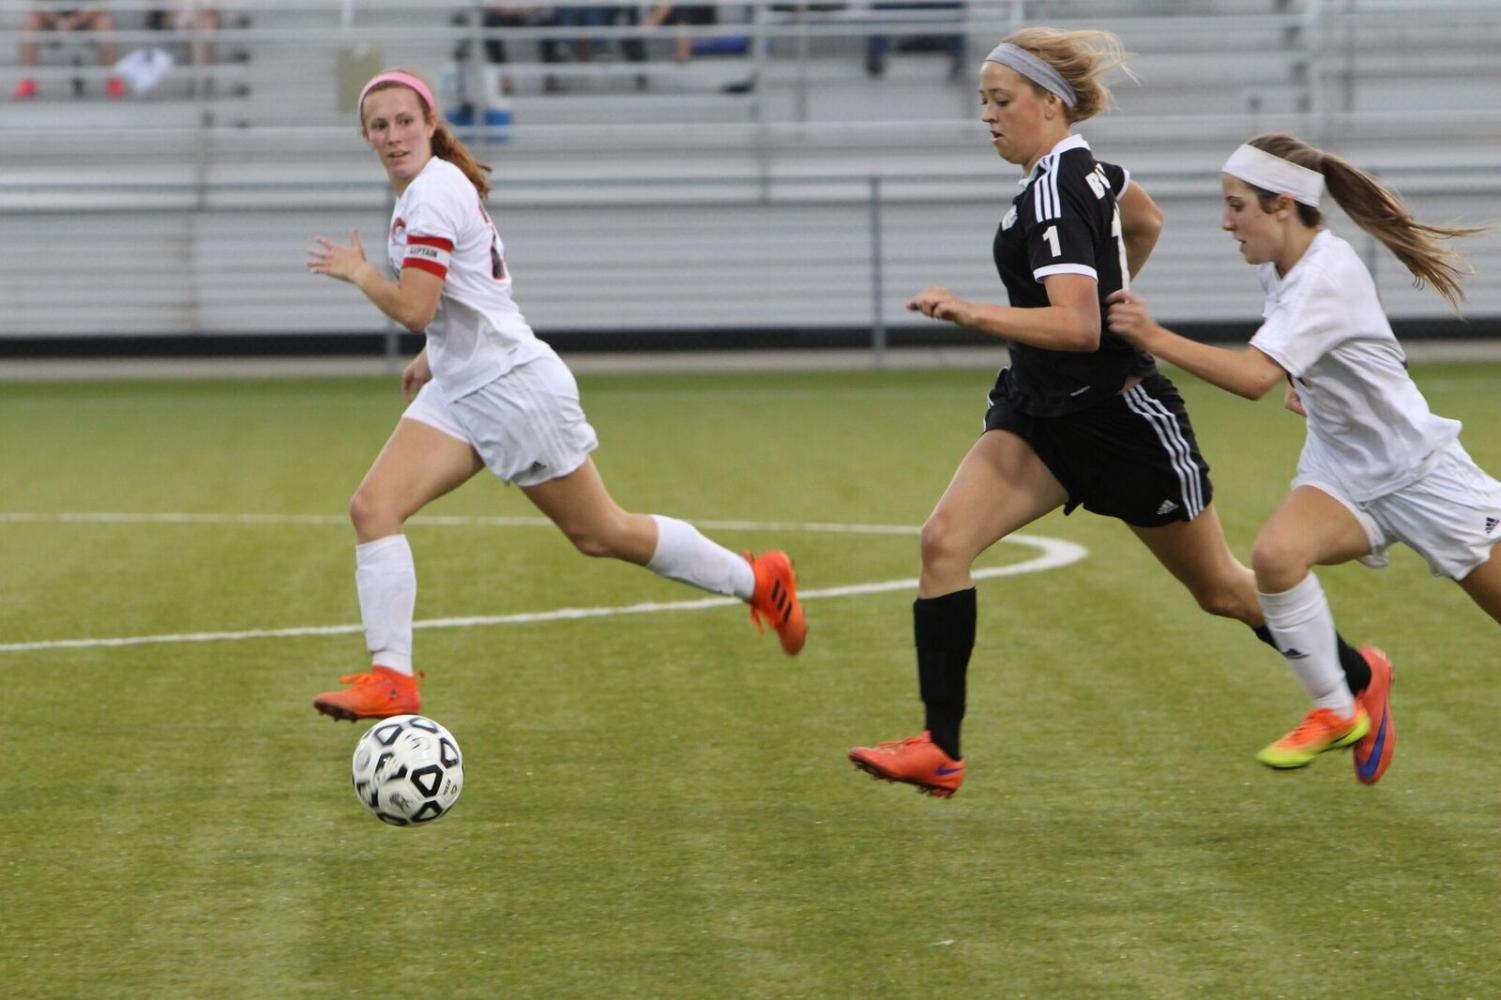 Senior Grace Fugate dribbled up the field Monday, May 14 in the first game of regionals.